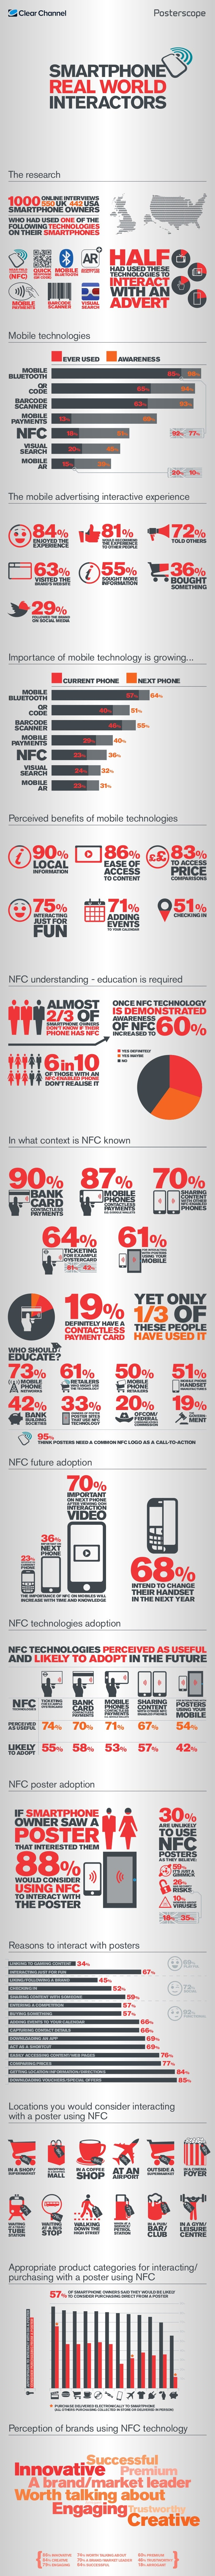 Posterscope nfc infographic